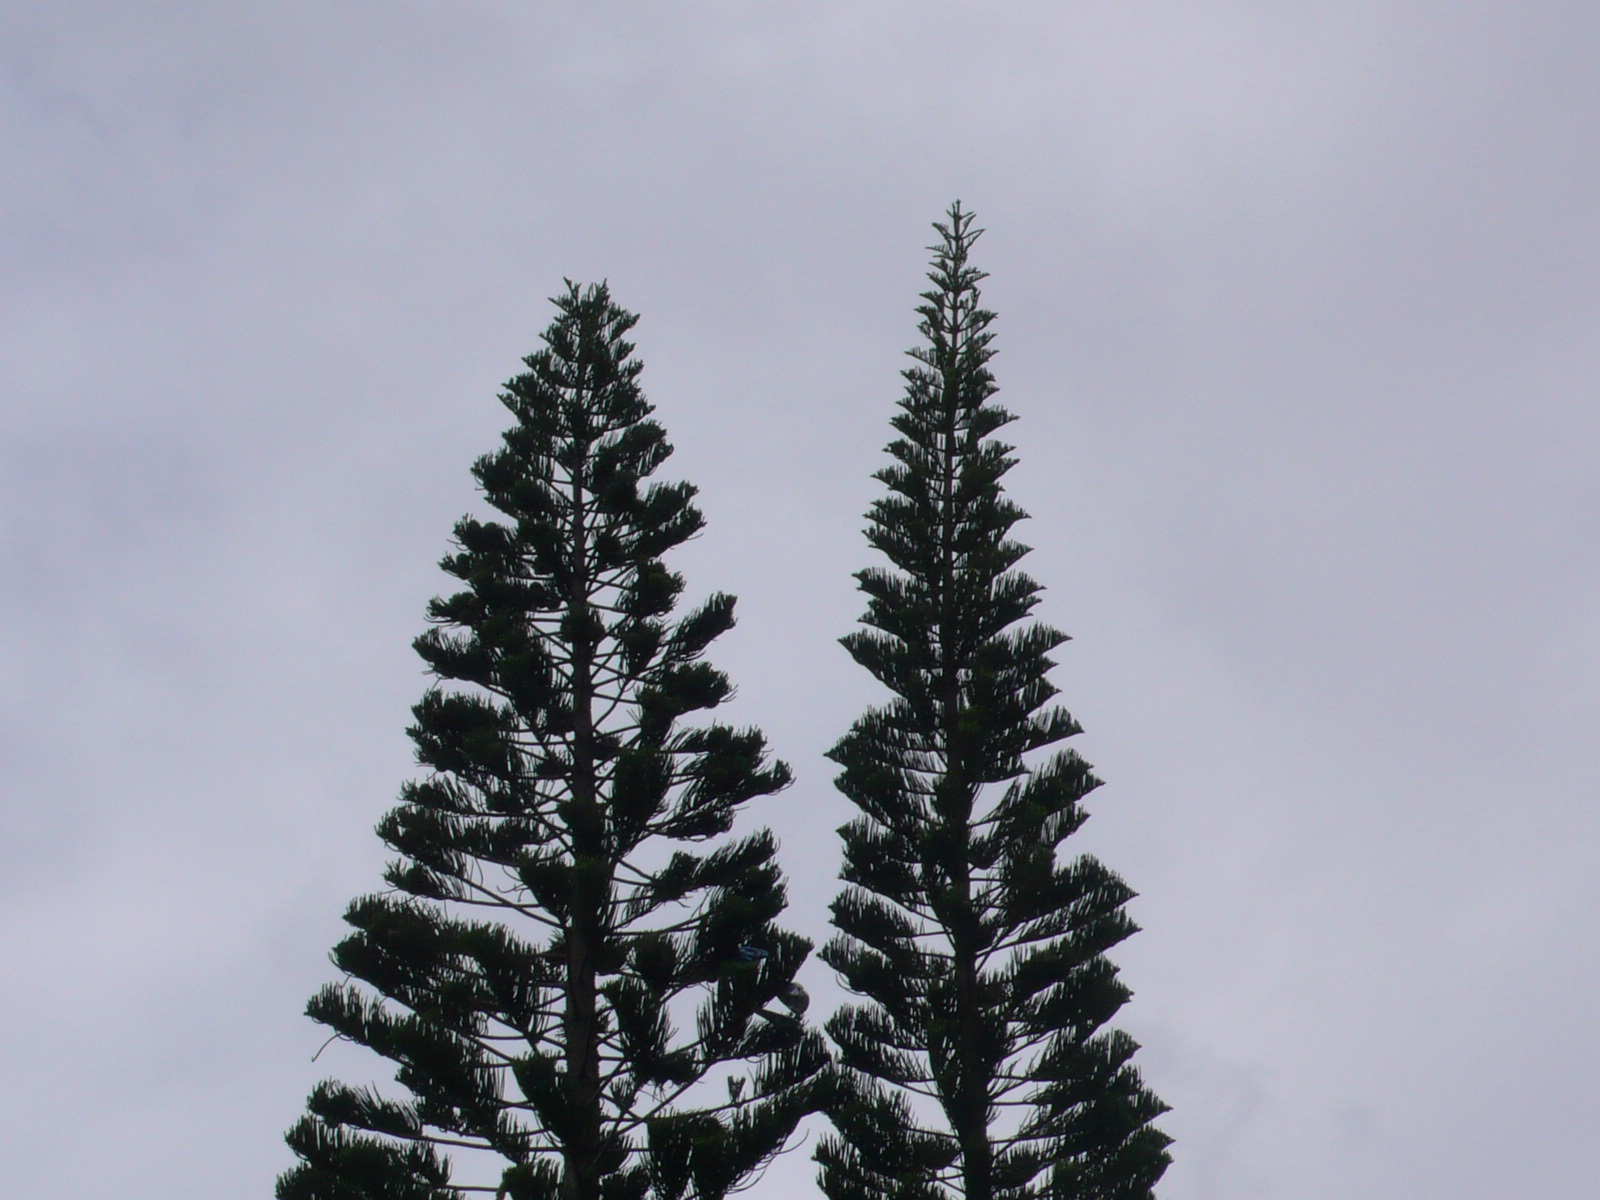 And information network araucaria heterophylla norfolk pine - Using